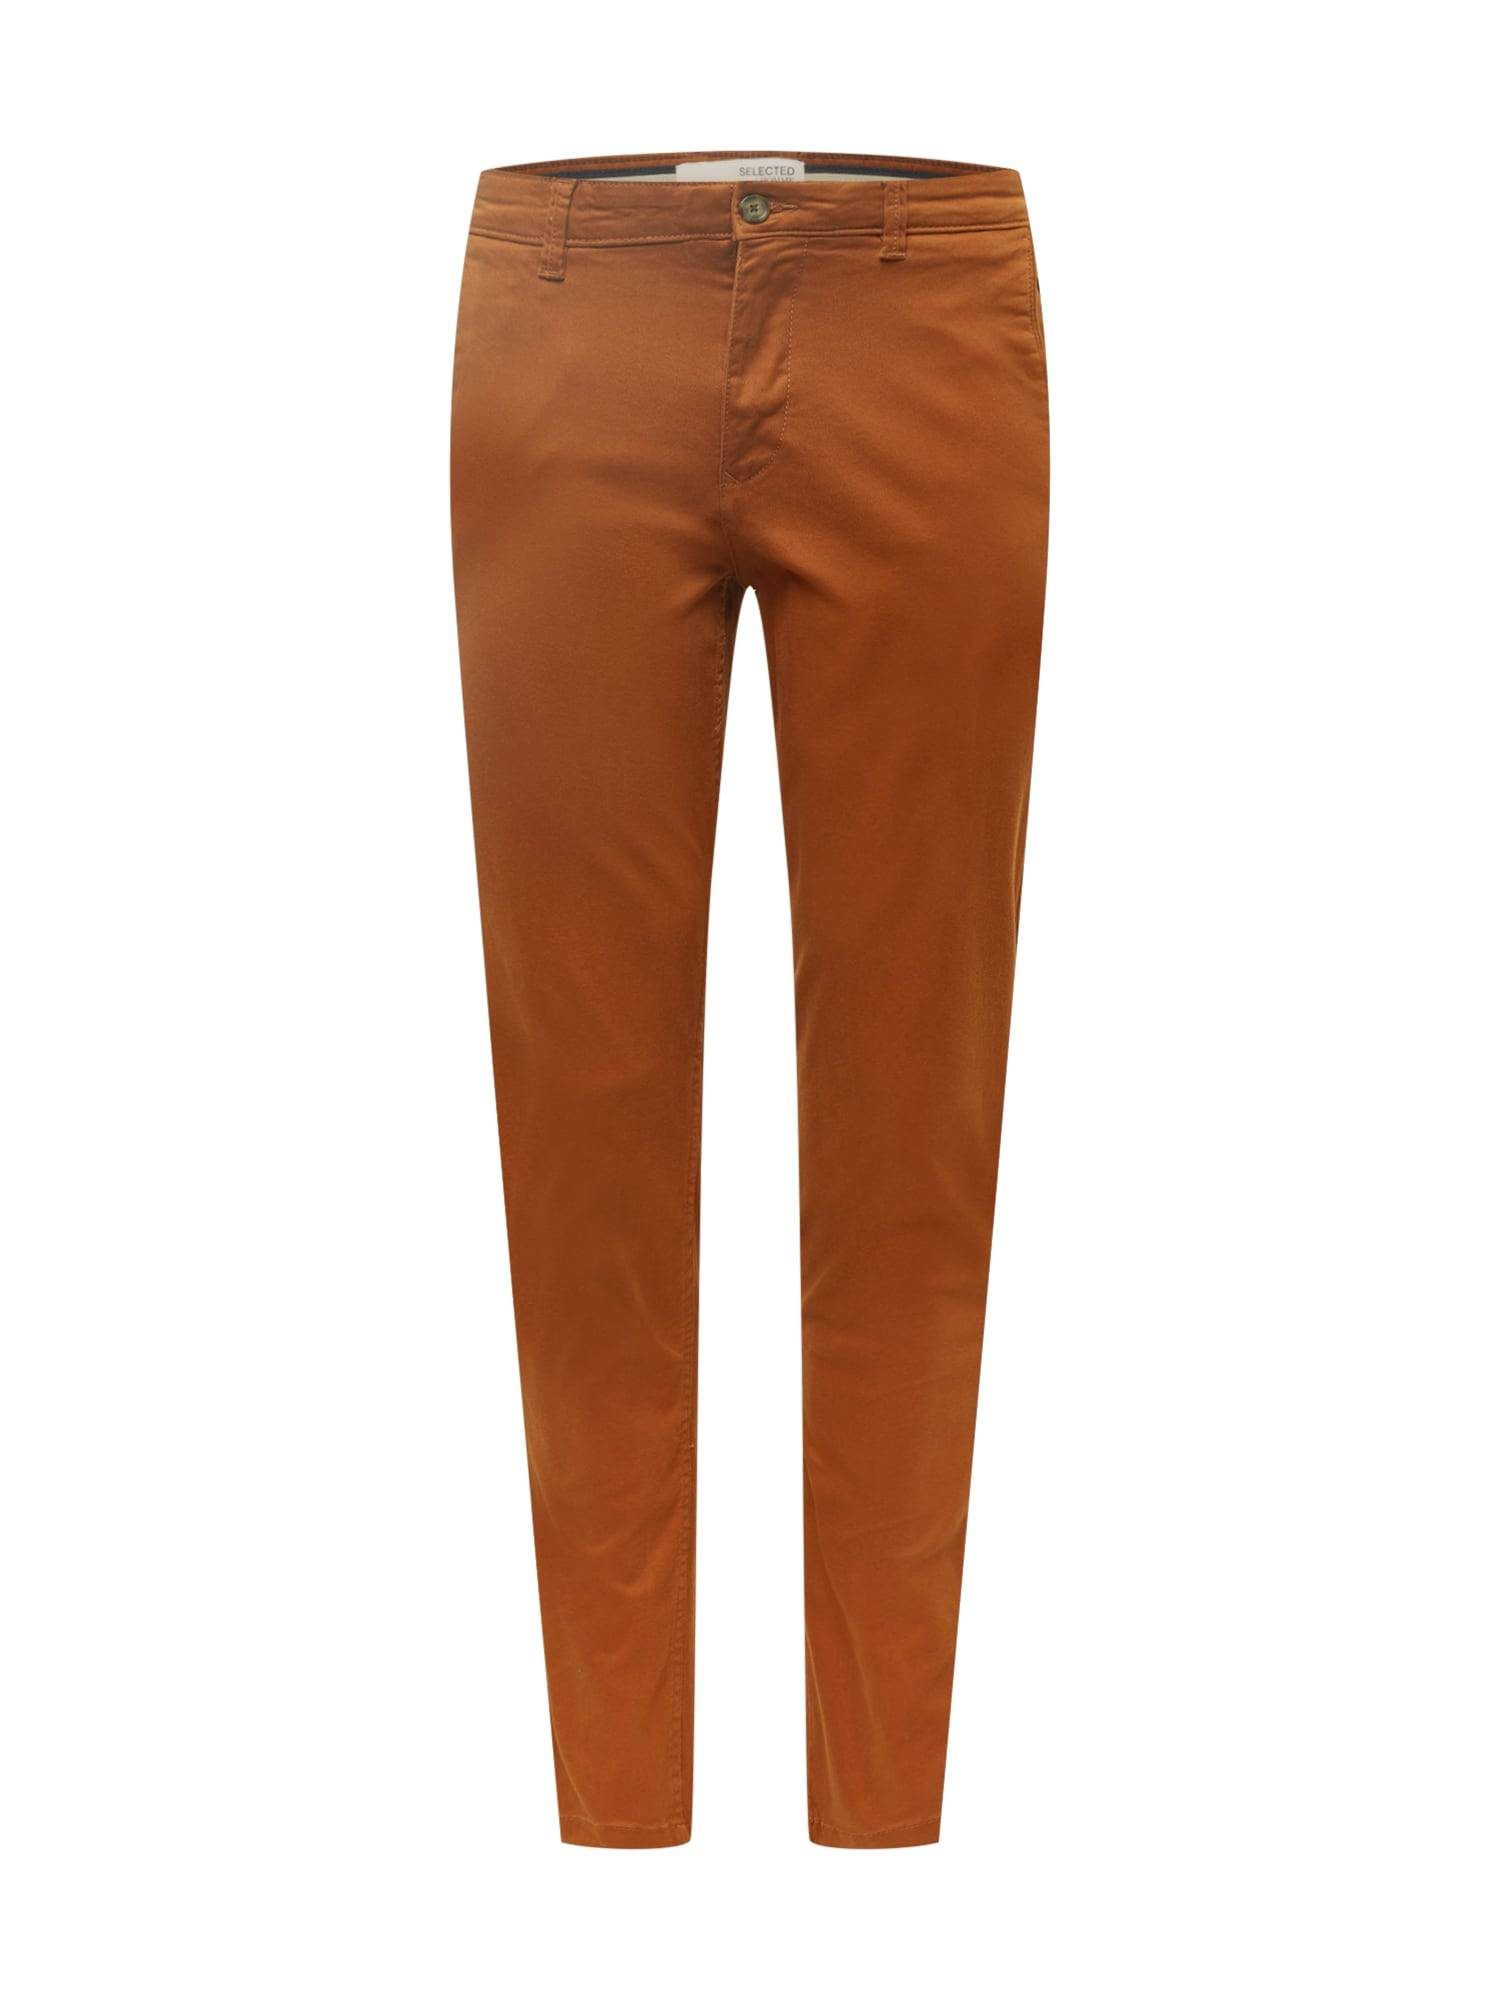 SELECTED HOMME Pantalon chino 'New Paris'  - Marron - Taille: 32 - male